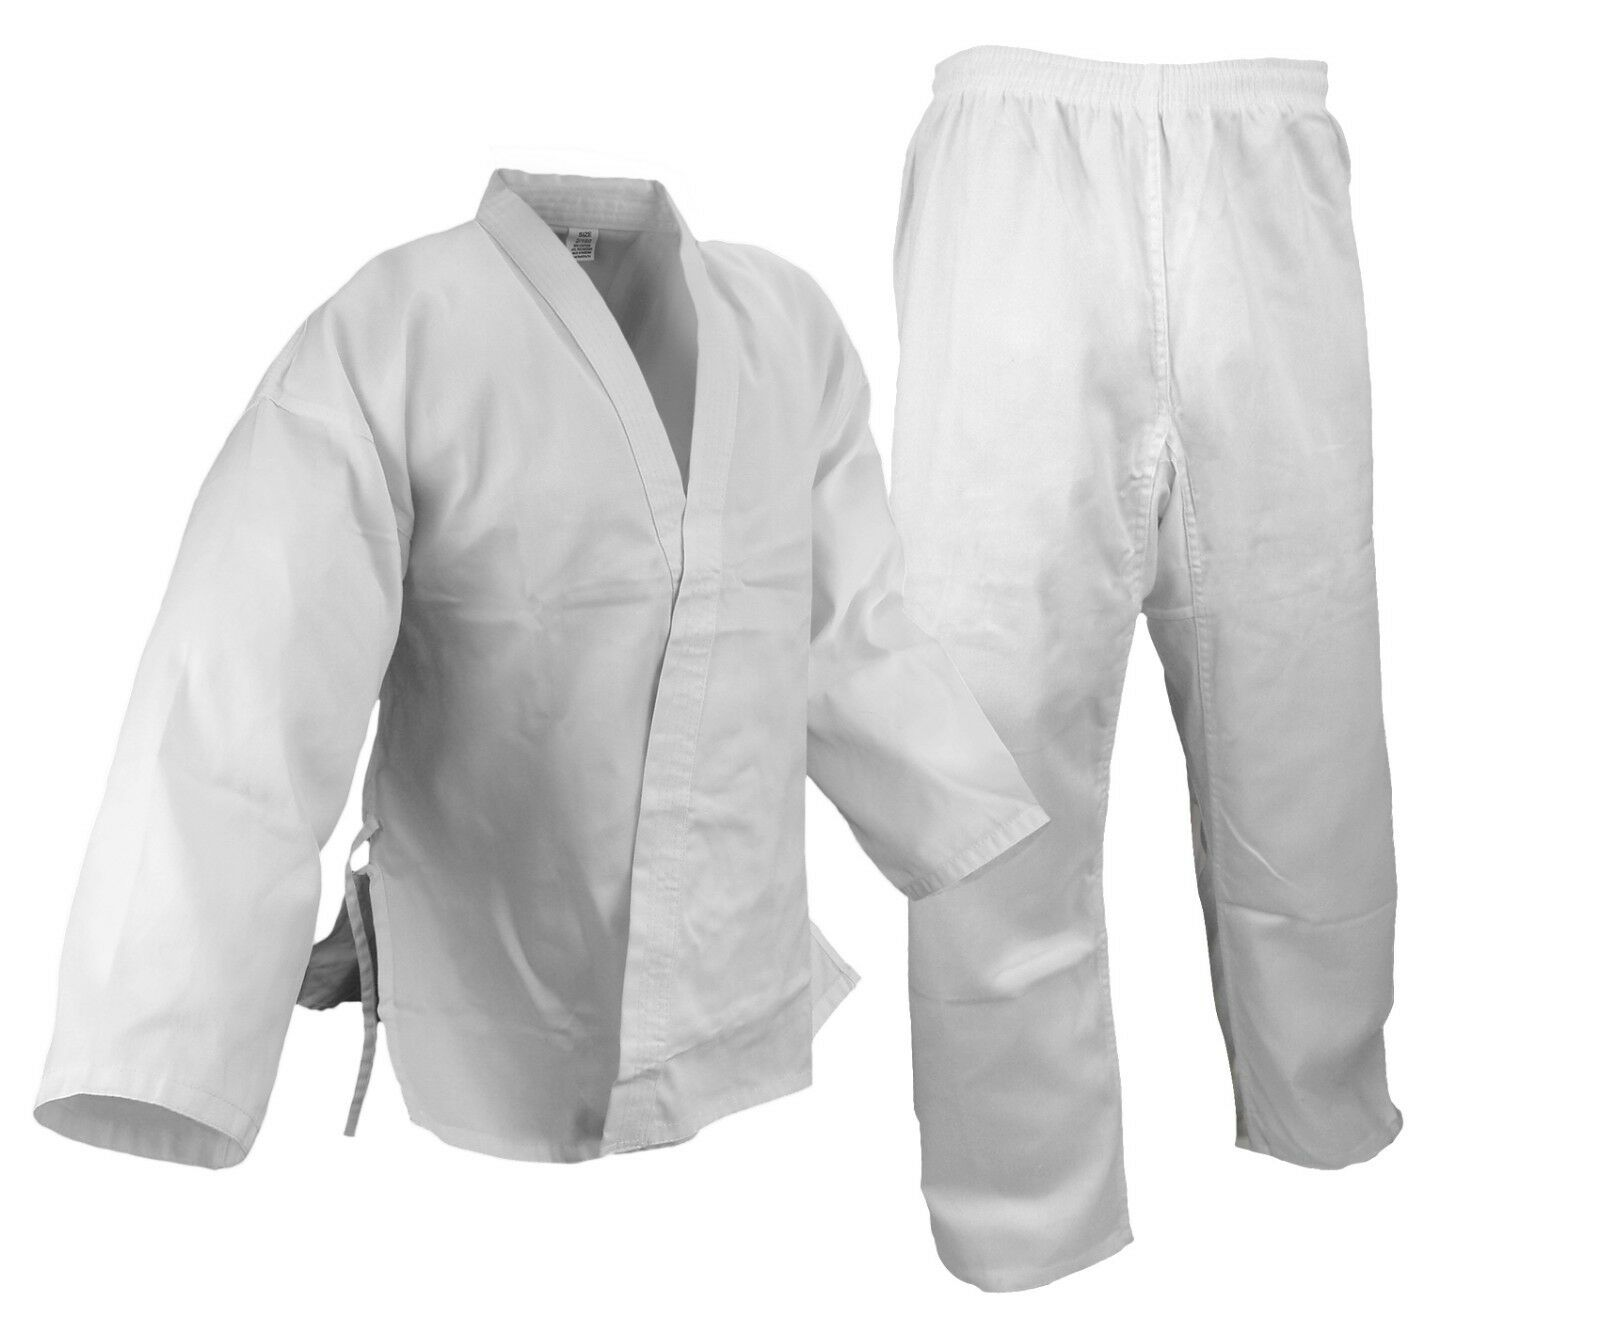 Size 9 New  Karate 7.5oz White Gi Uniform w White Belt, Cotton Poly blend  select from the newest brands like